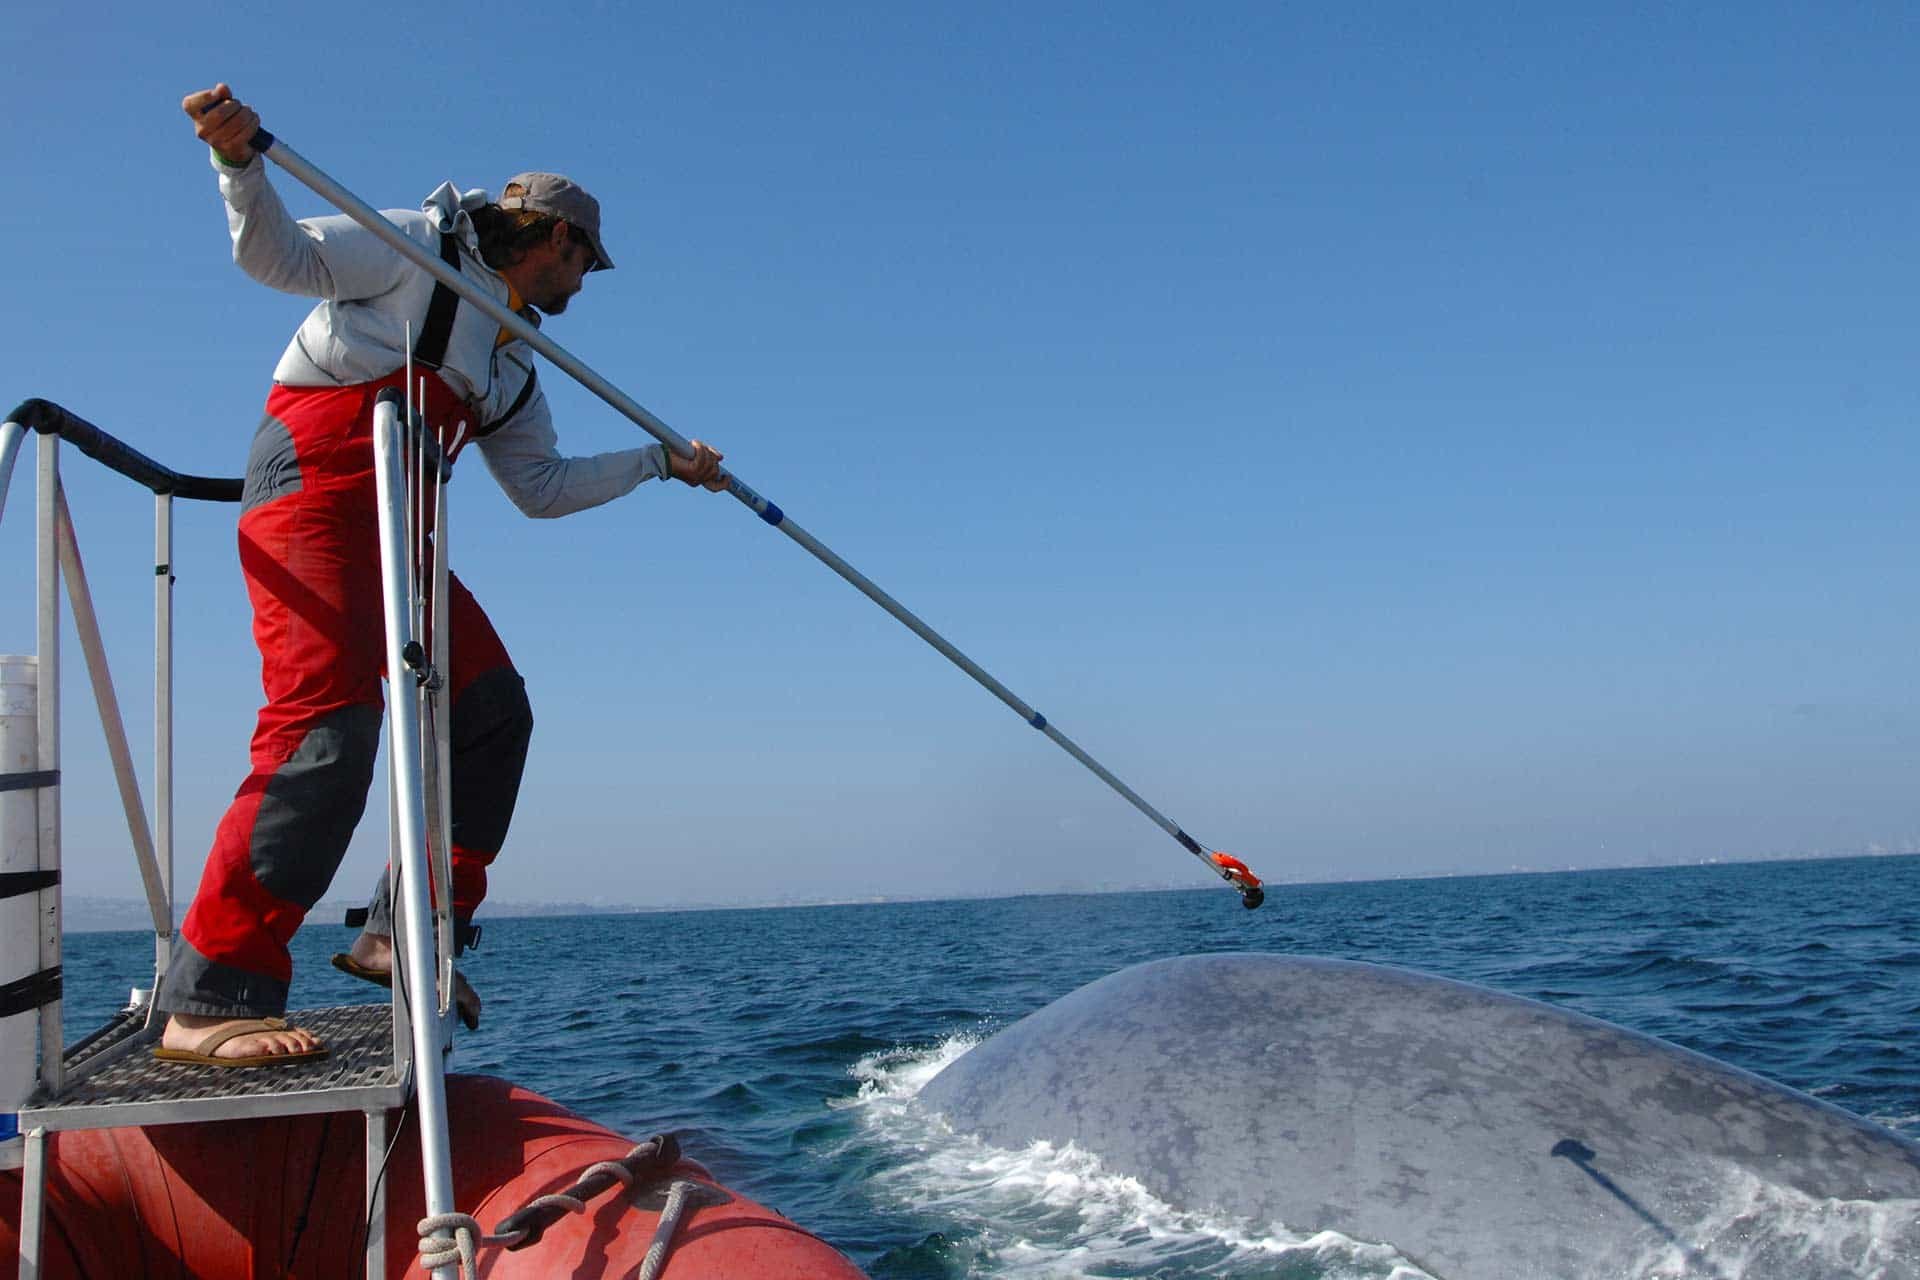 scientist on a boat using a long pole to attach a tracking tag to a whale in the water